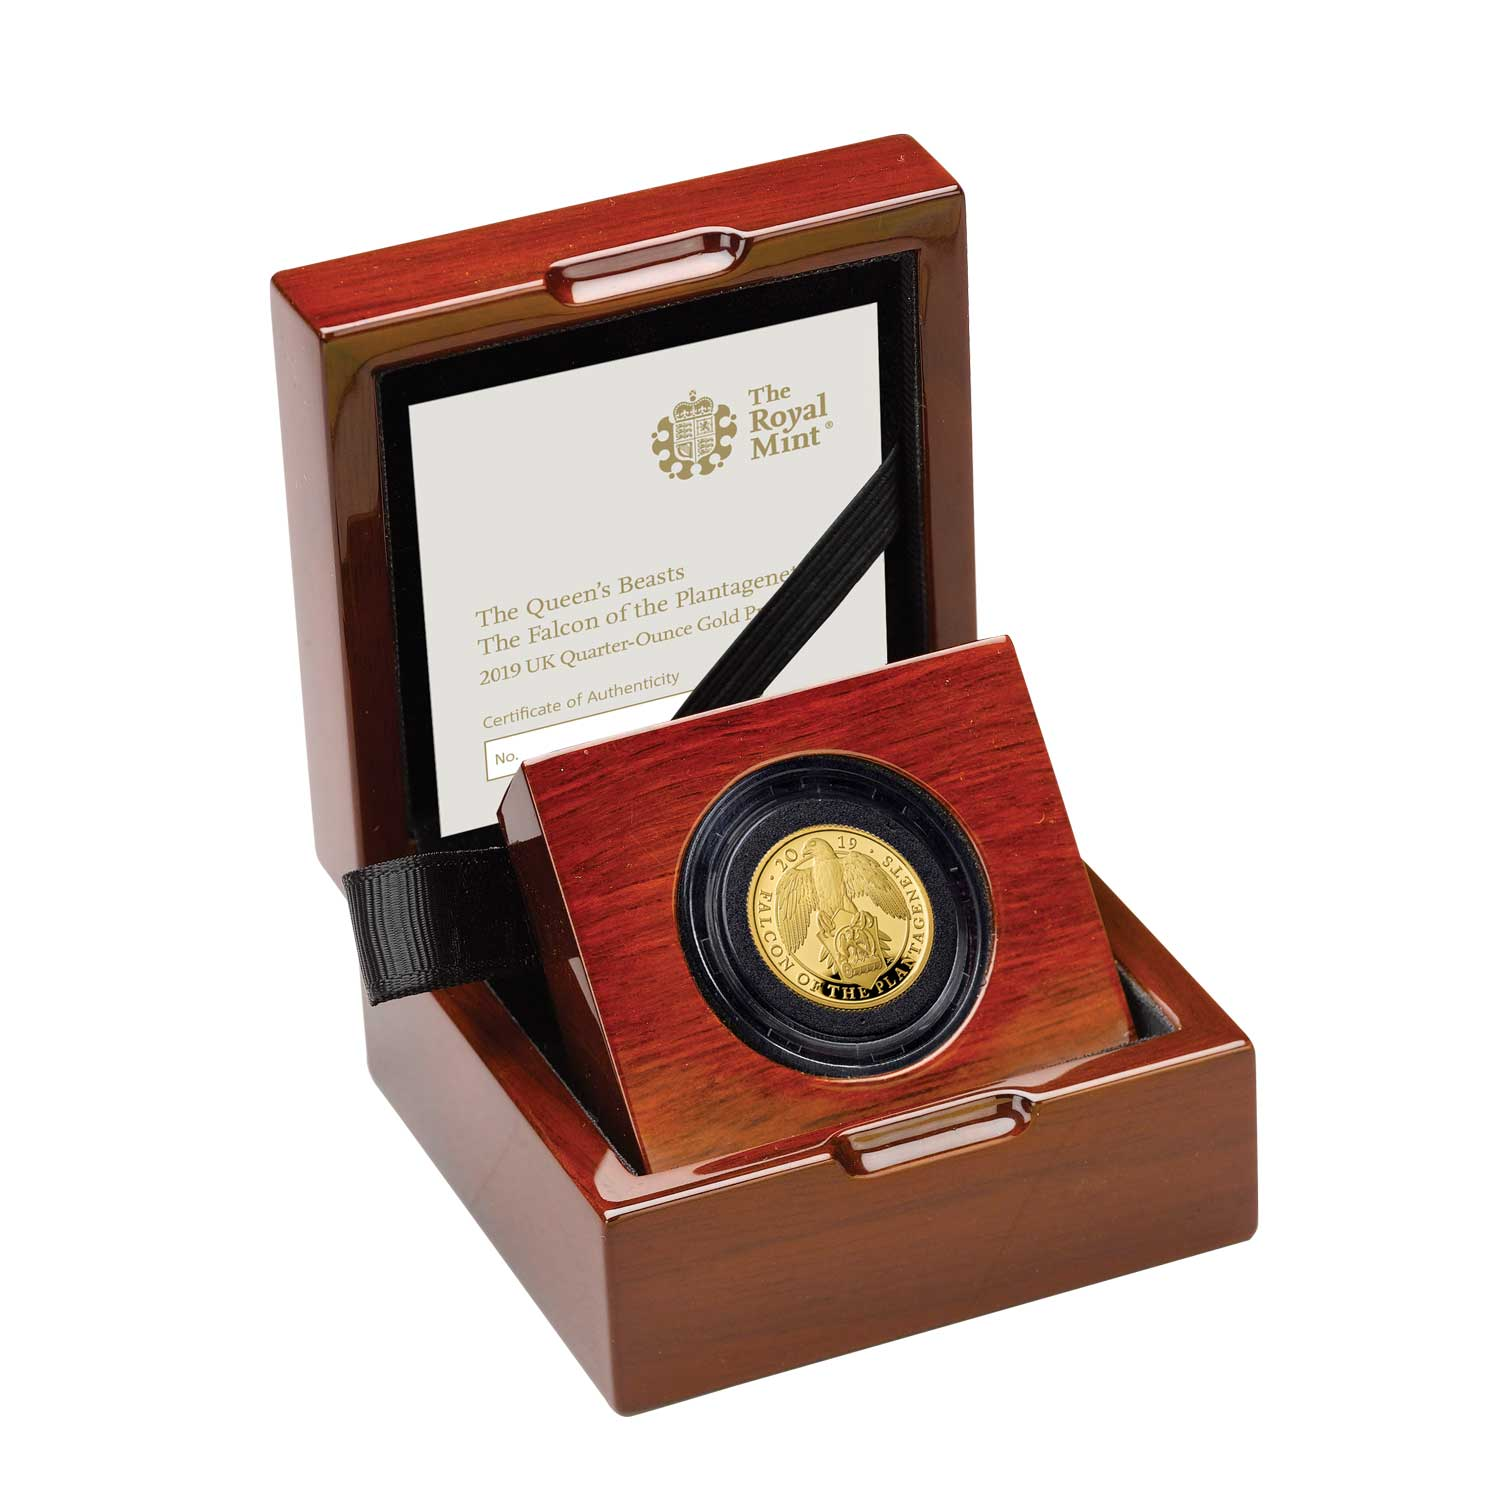 The Falcon of the Plantagenets 2019 UK Quarter-Ounce Gold Proof Coin